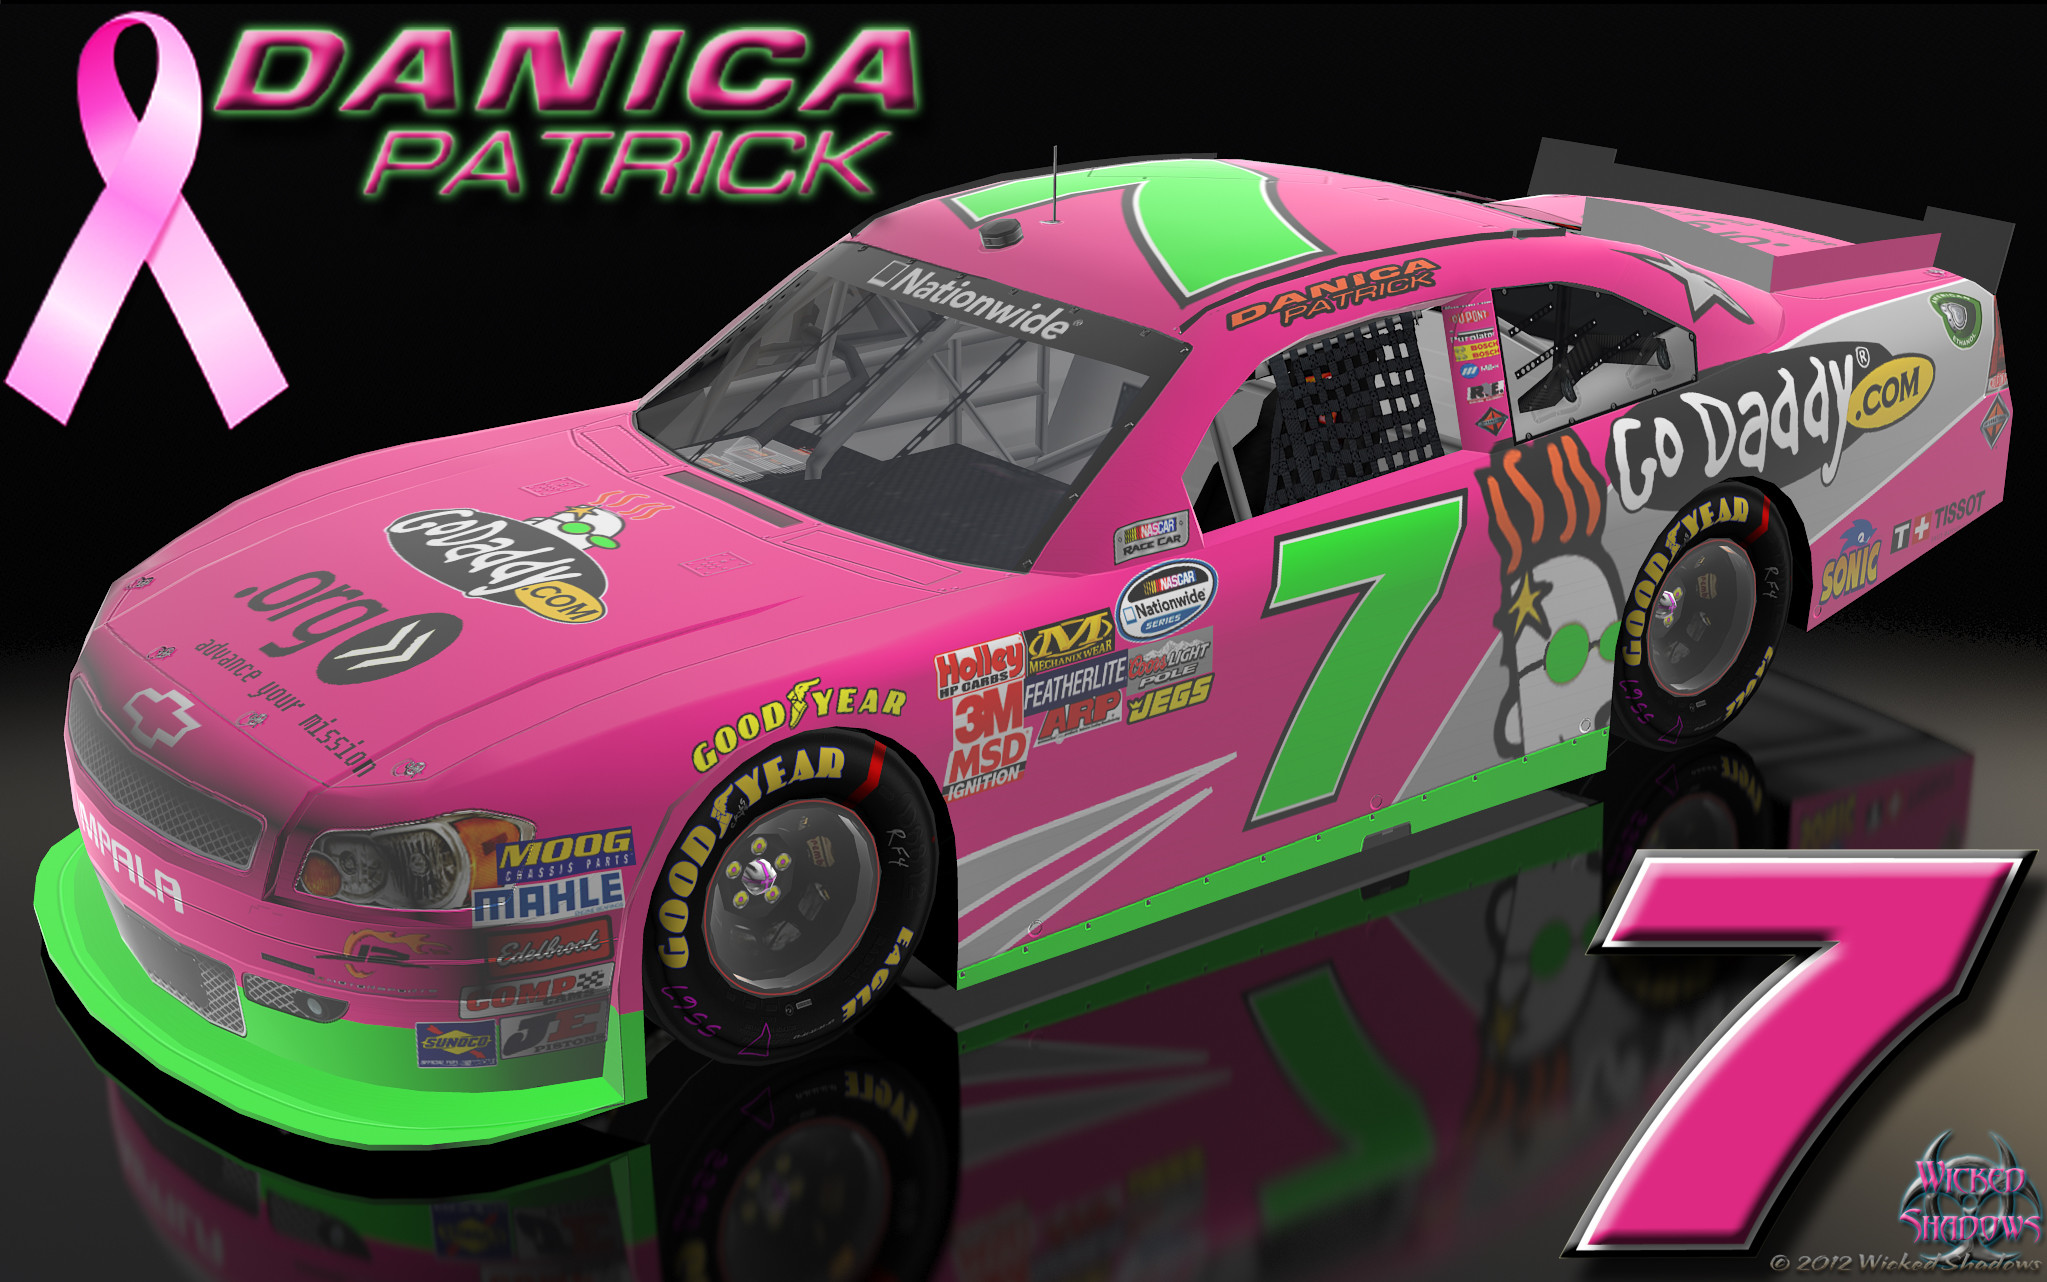 2047x1282 Danica Patrick Go Daddy Pink Car Breast Cancer Awareness Wallpaper